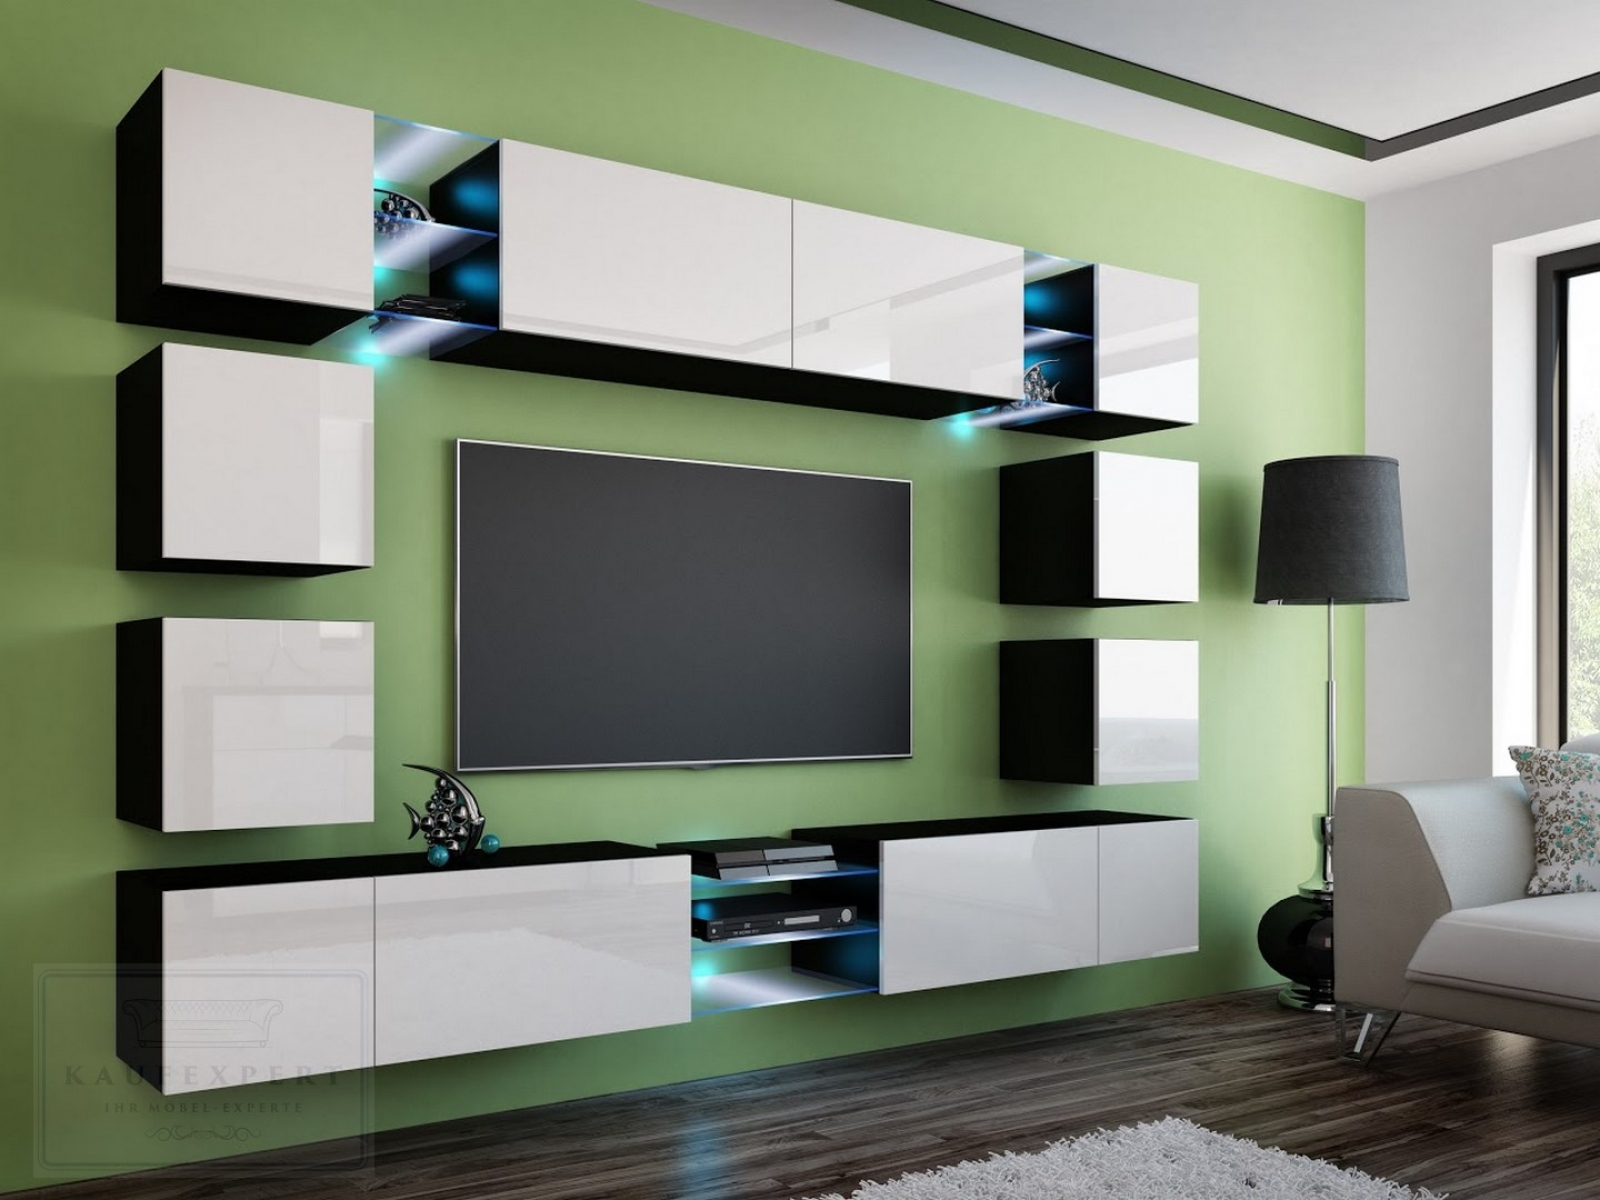 led beleuchtung jugendzimmer jugendzimmer jungen mit modernem design indirekte beleuchtung led. Black Bedroom Furniture Sets. Home Design Ideas